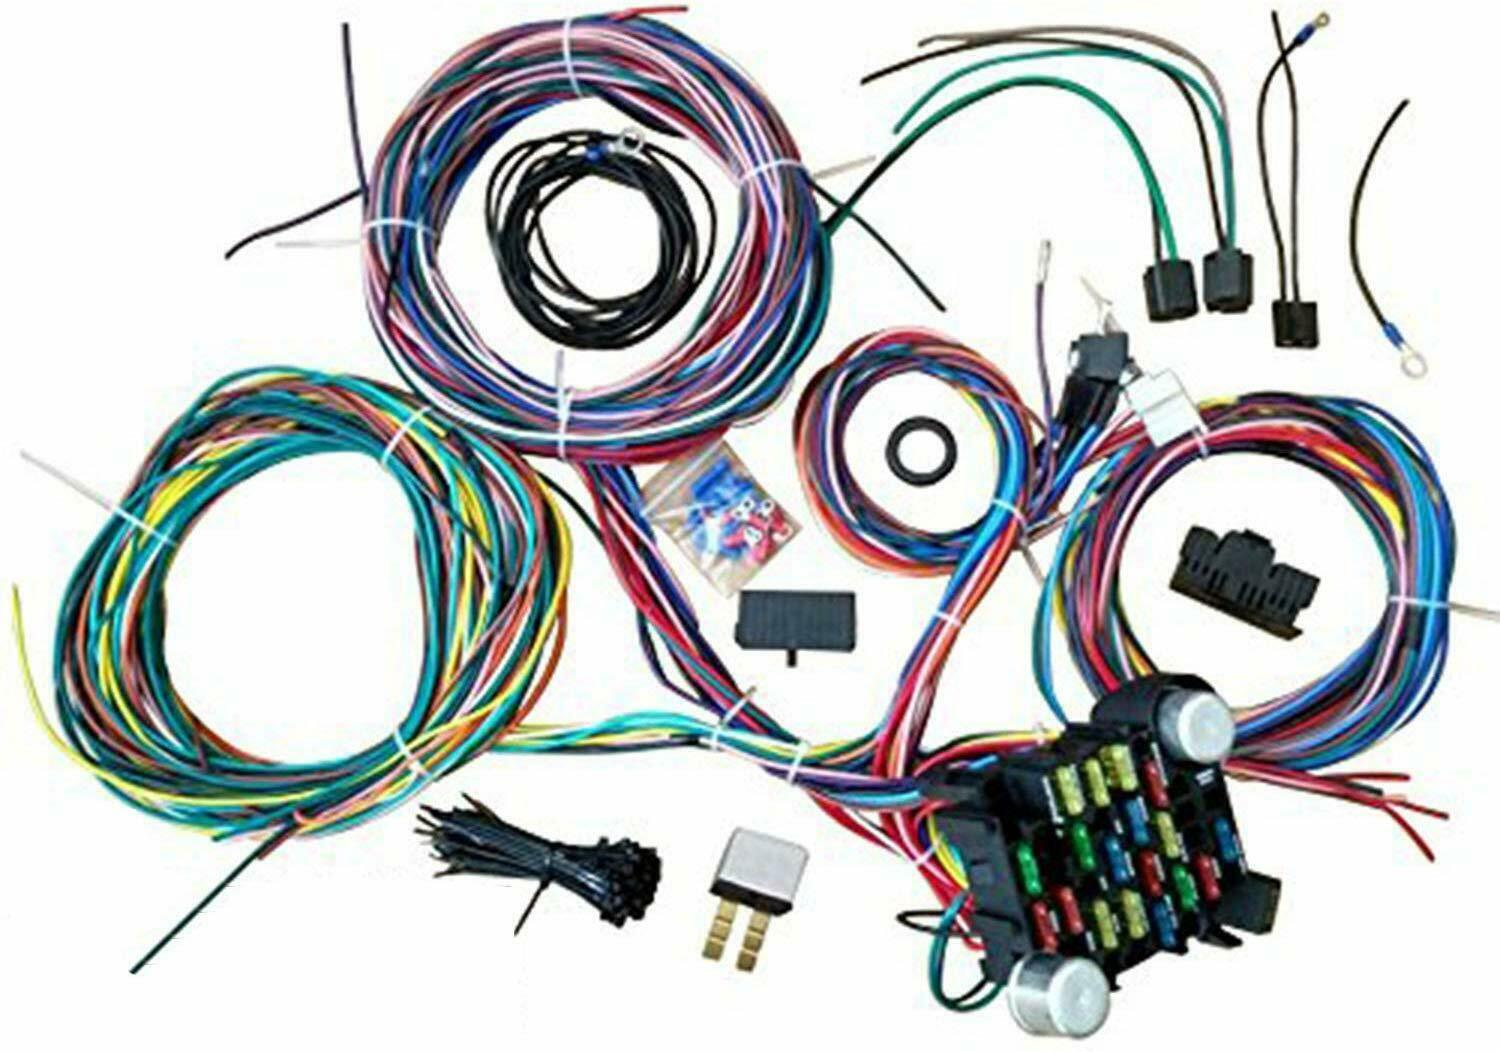 73-82 Chevy GMC Truck Pickup Wiring Harness Universal Wiring Kit 21 Circuit